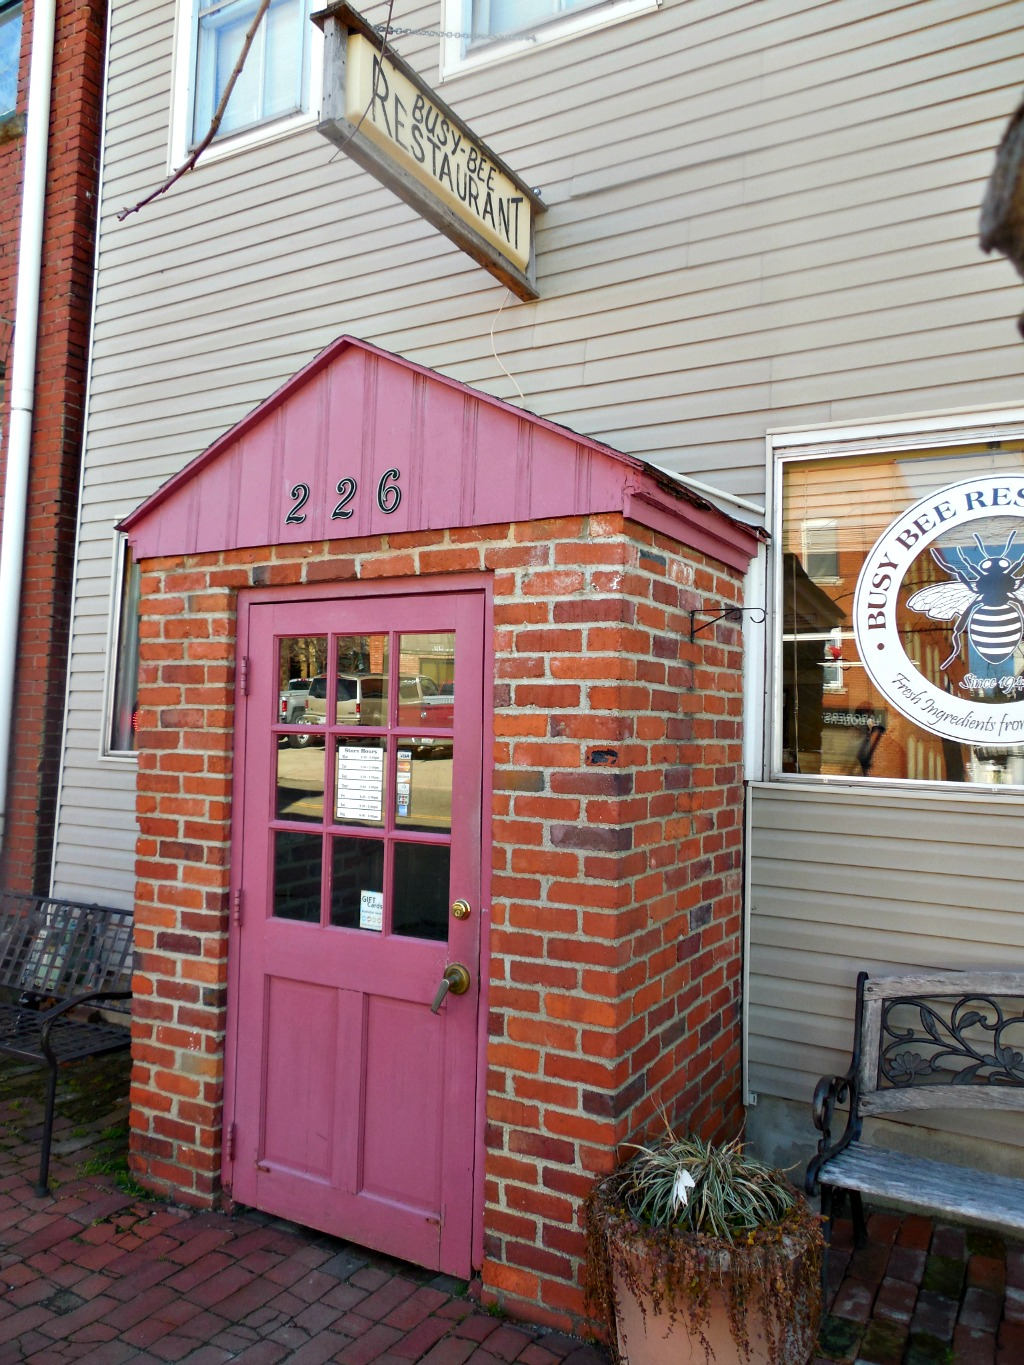 4 Great Places to Eat in Marietta, Ohio